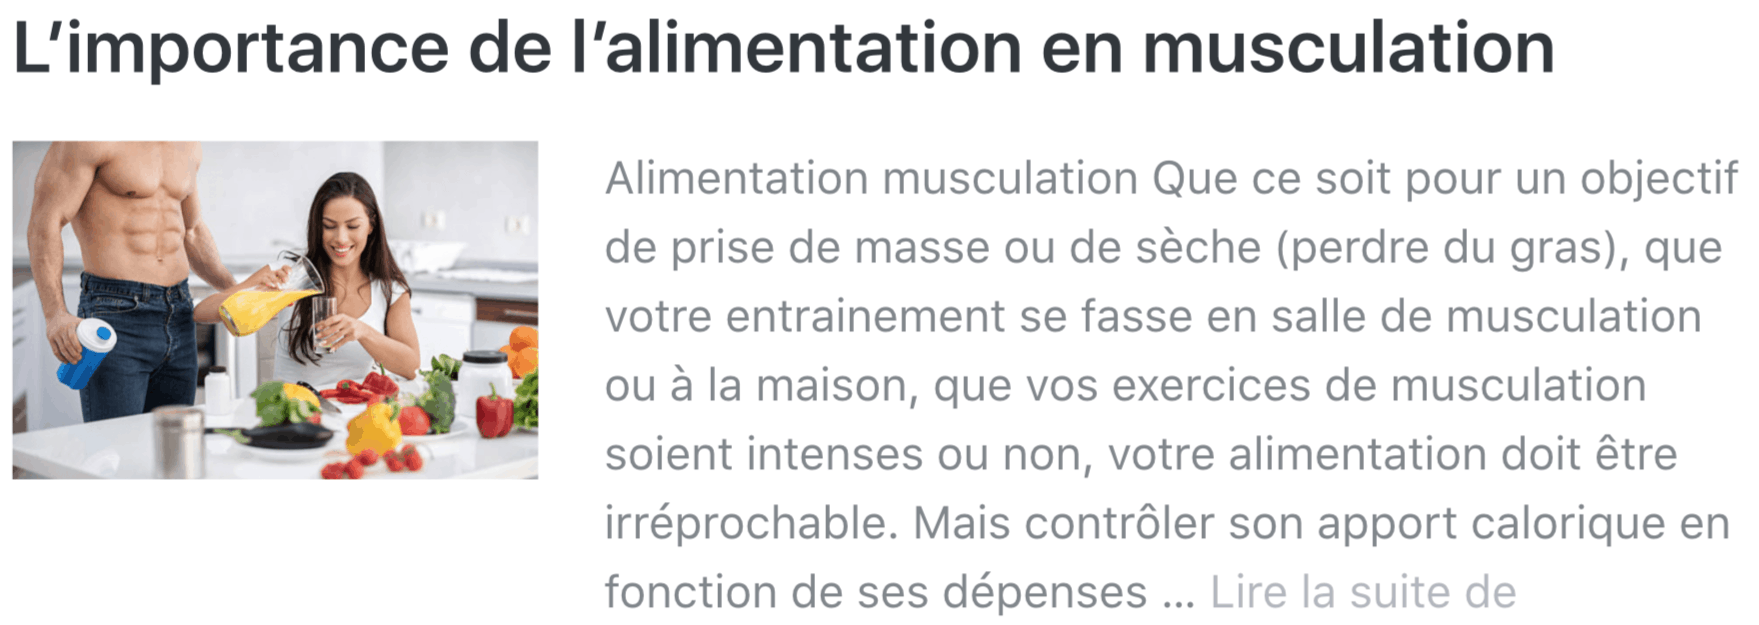 alimentation musculation